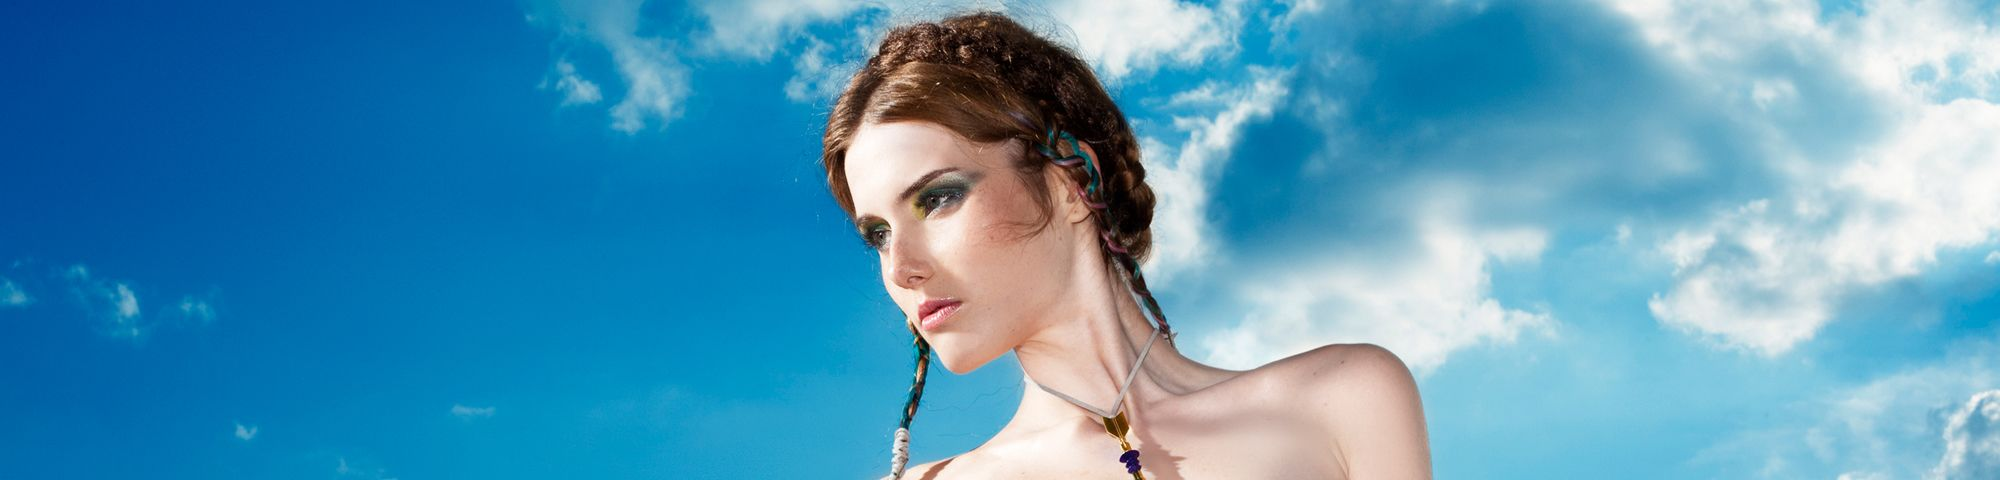 Woman wearing jewellery in front of a blue sky